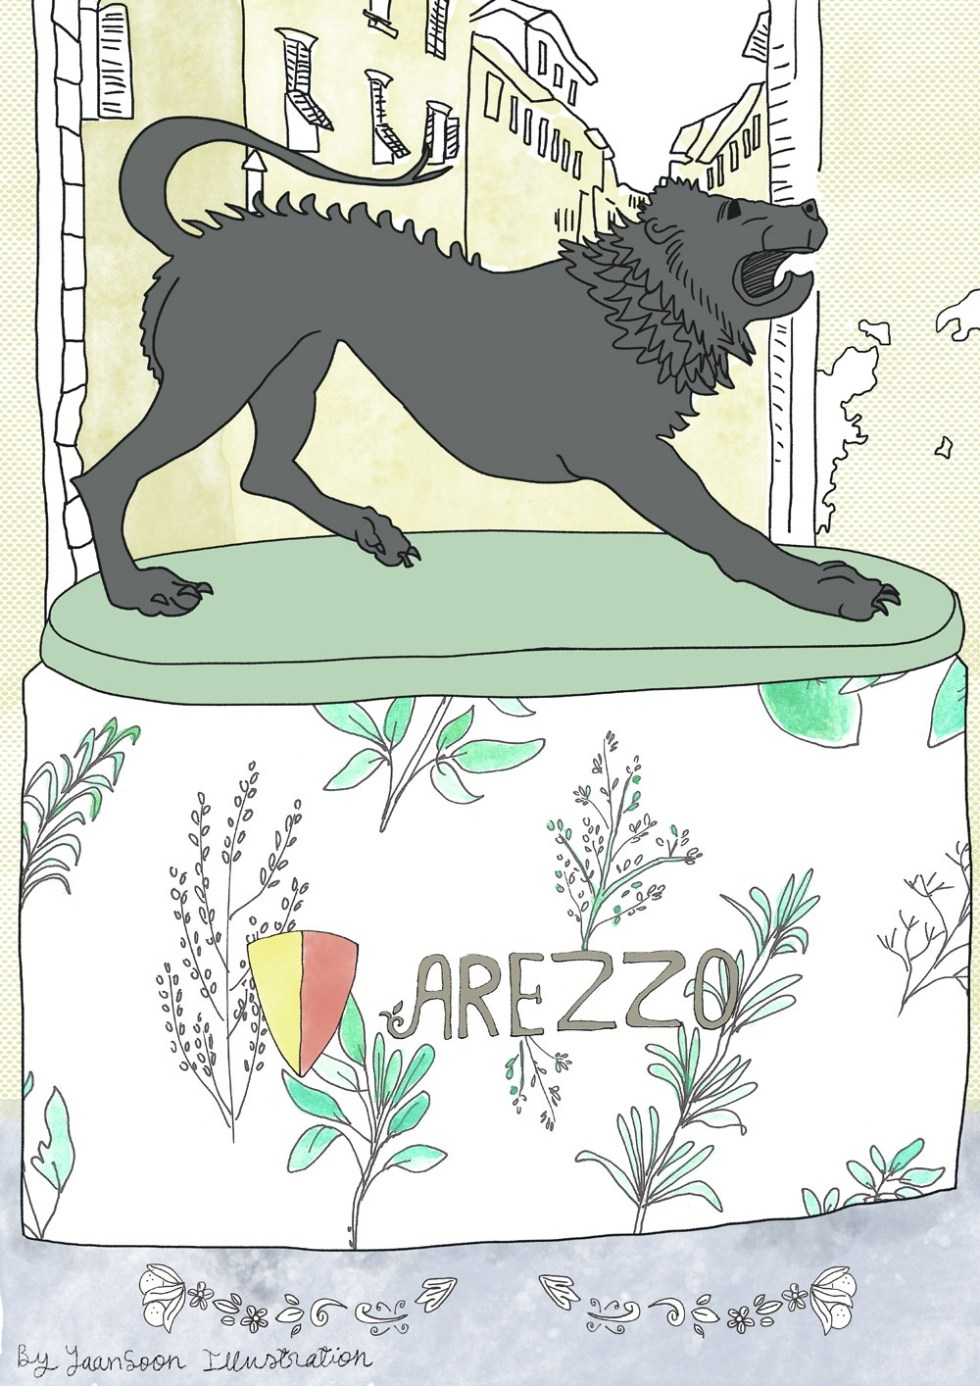 Italy Culinary Tour: Illustrated Food Map of Arezzo in Tuscany | Travel Illustration & Illustrated Map, Chimera of Arezzo | Yaansoon Illustration + Art